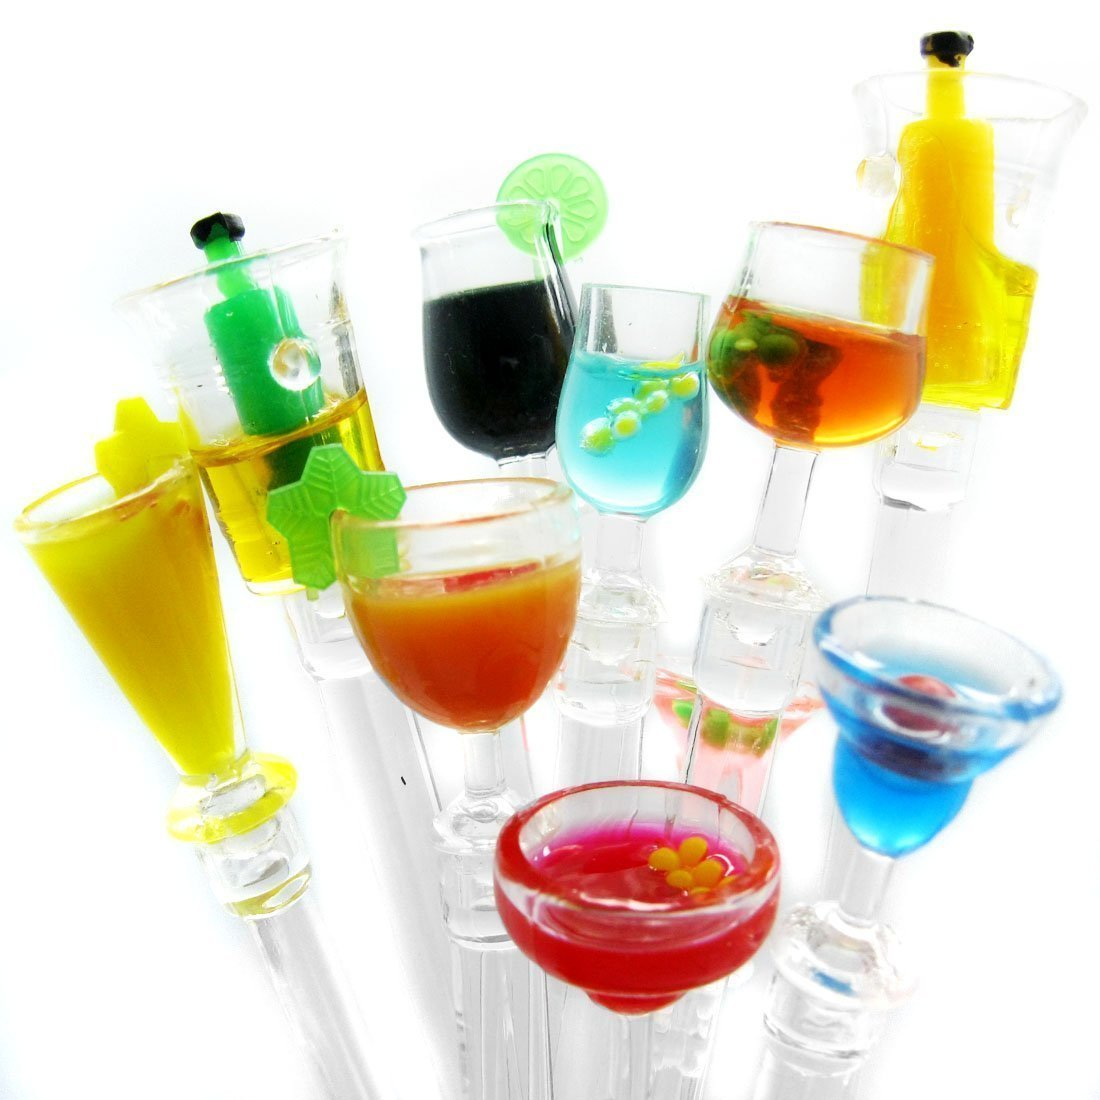 30 Acrylic Cocktail Swizzle Sticks/Drink Stirrers Party Swizzle Spoon(Assorted) - Cocktail Mixing Spoon, Bootle Cup Mixer Stir Sticks Small Bar Party Supply